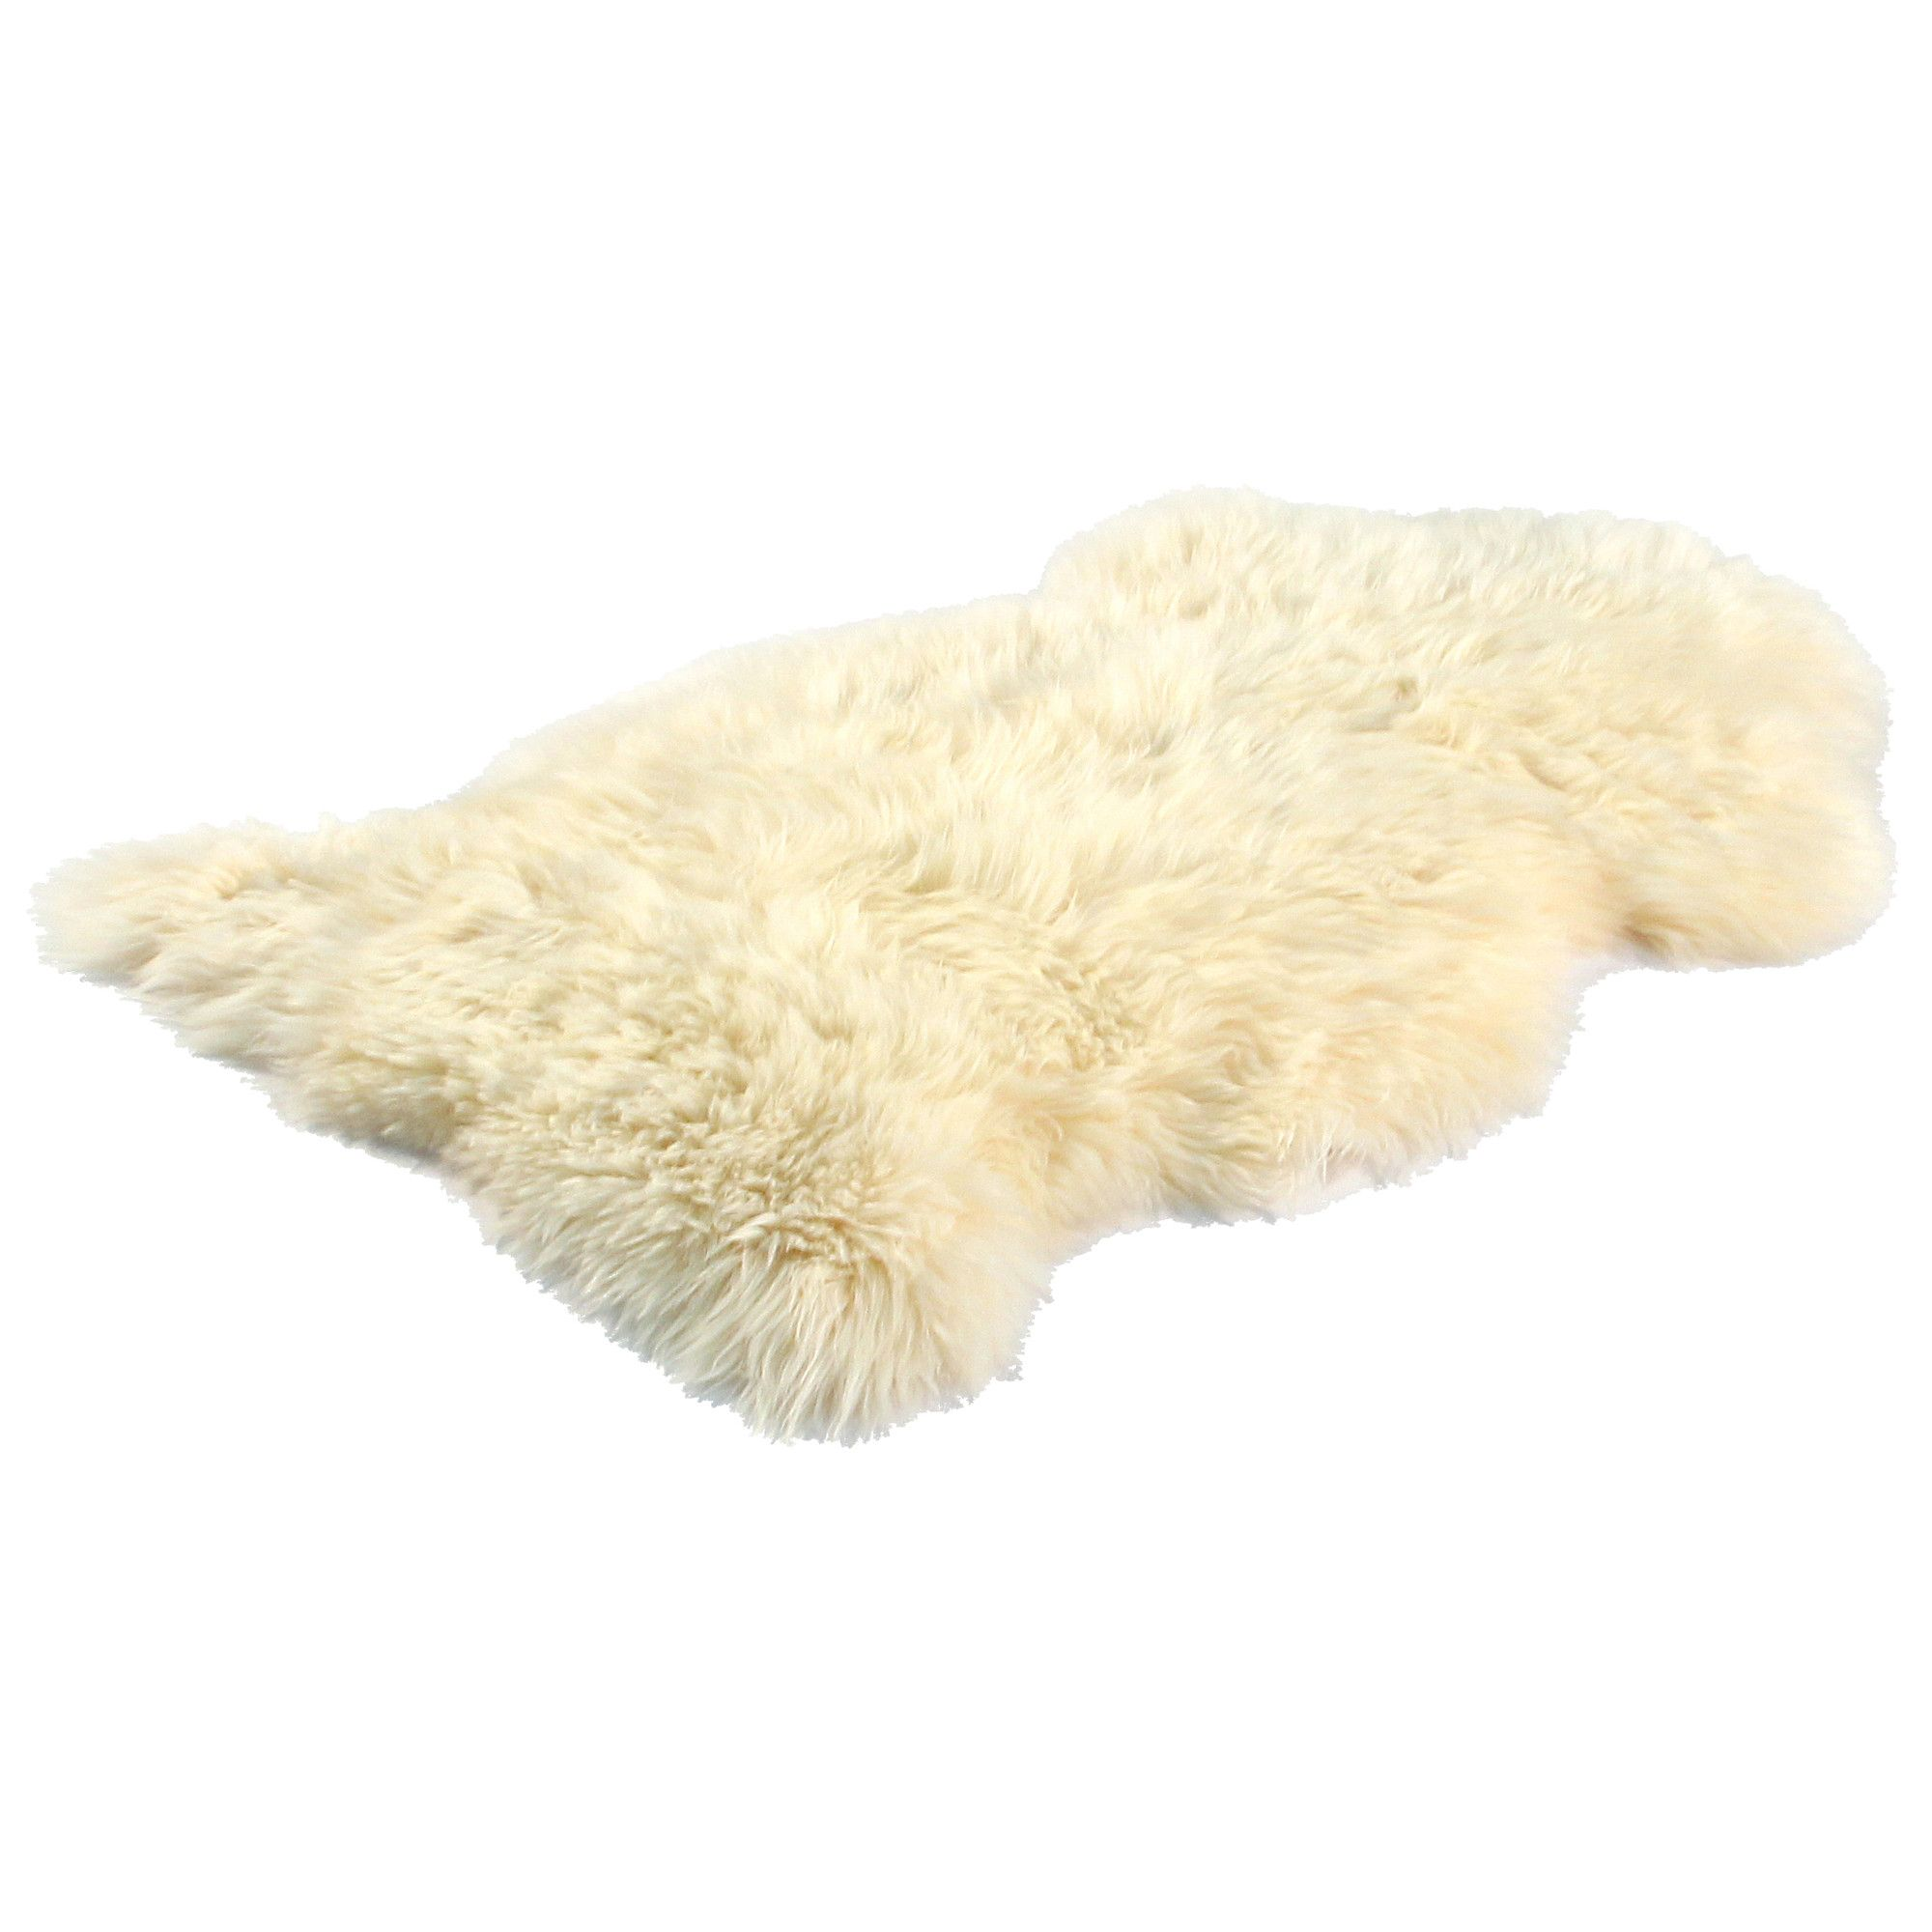 Bowron Sheepskin Long Wool Gold Star Rug in Champagne - 180cm H x 214cm W (Eight Piece) at Tesco Direct